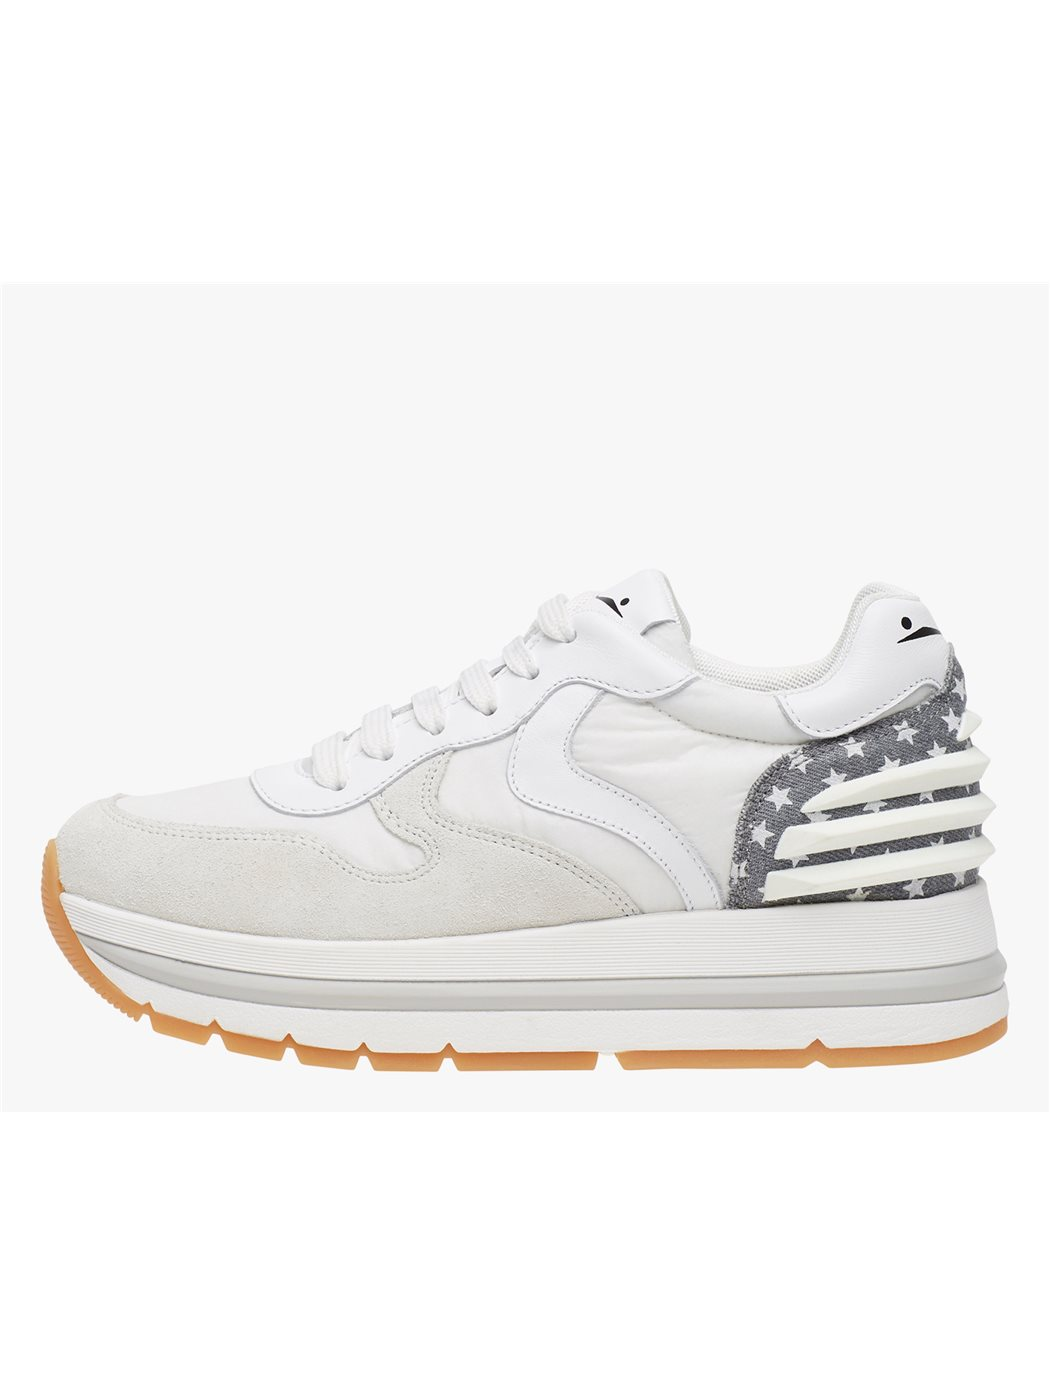 VOILE BLANCHE 2014751 0N01 SNEAKERS